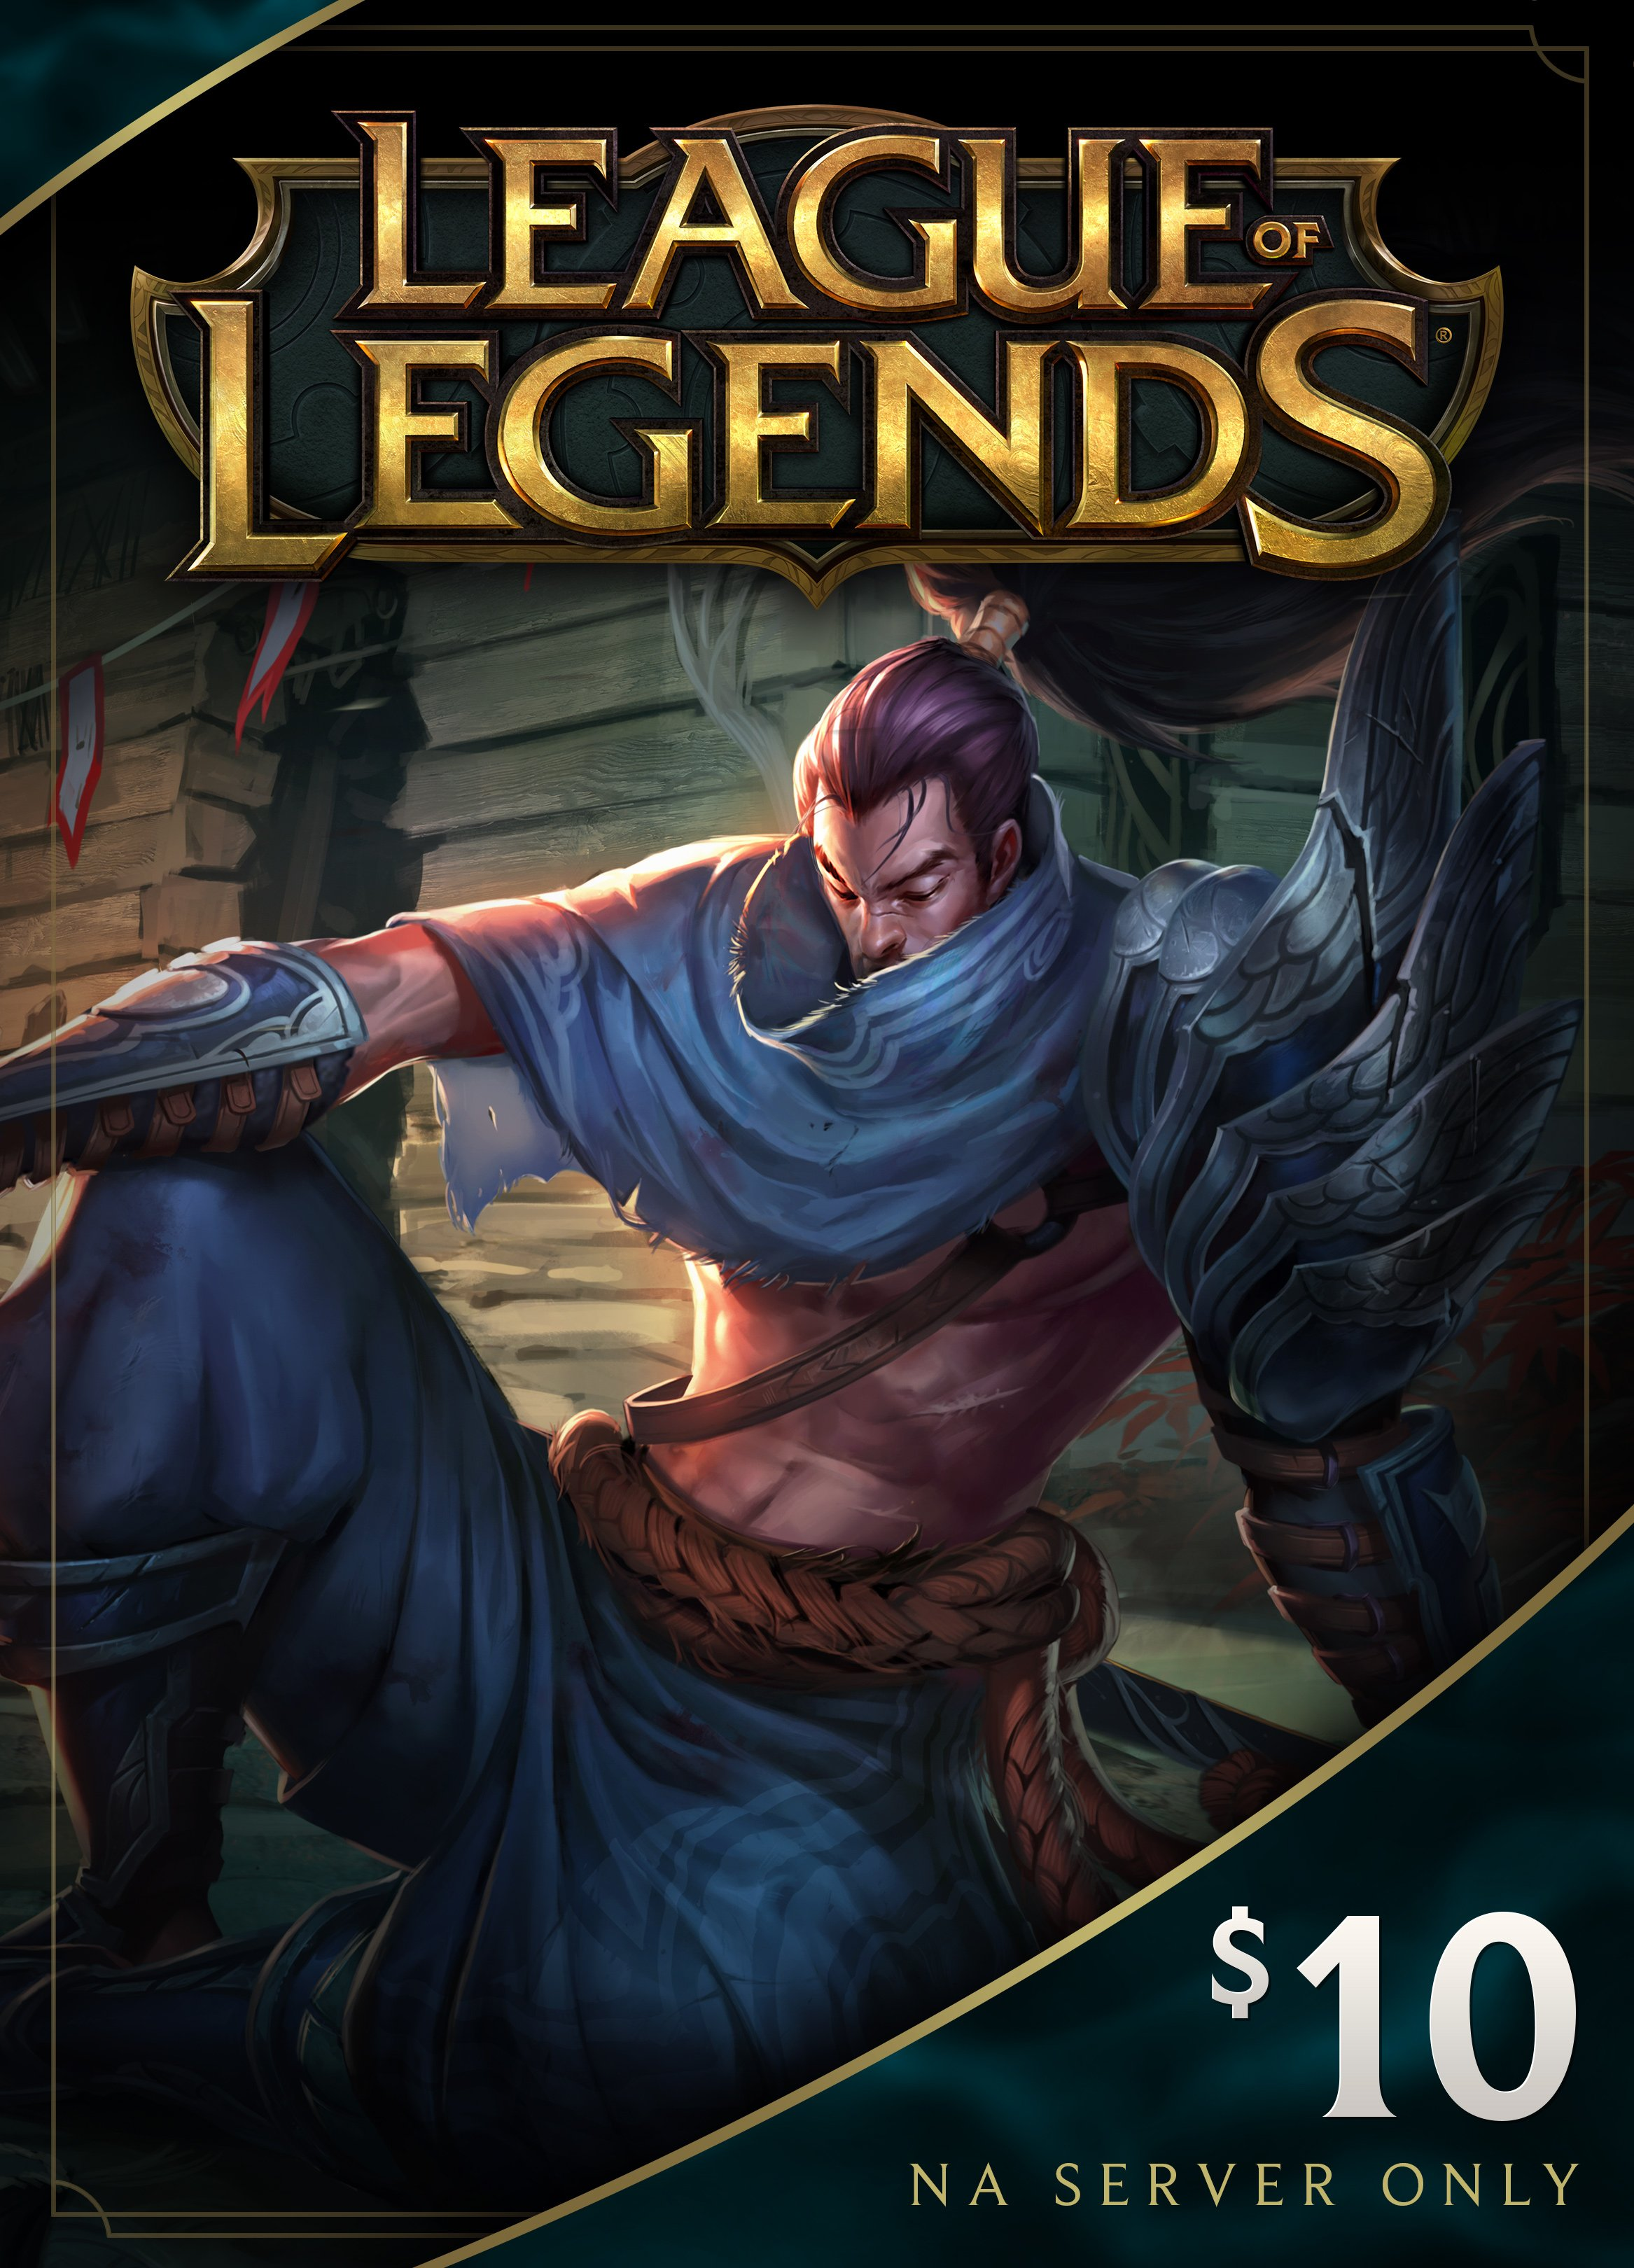 League Of Legends  10 Gift Card   1380 Riot Points   Na Server Only  Online Game Code